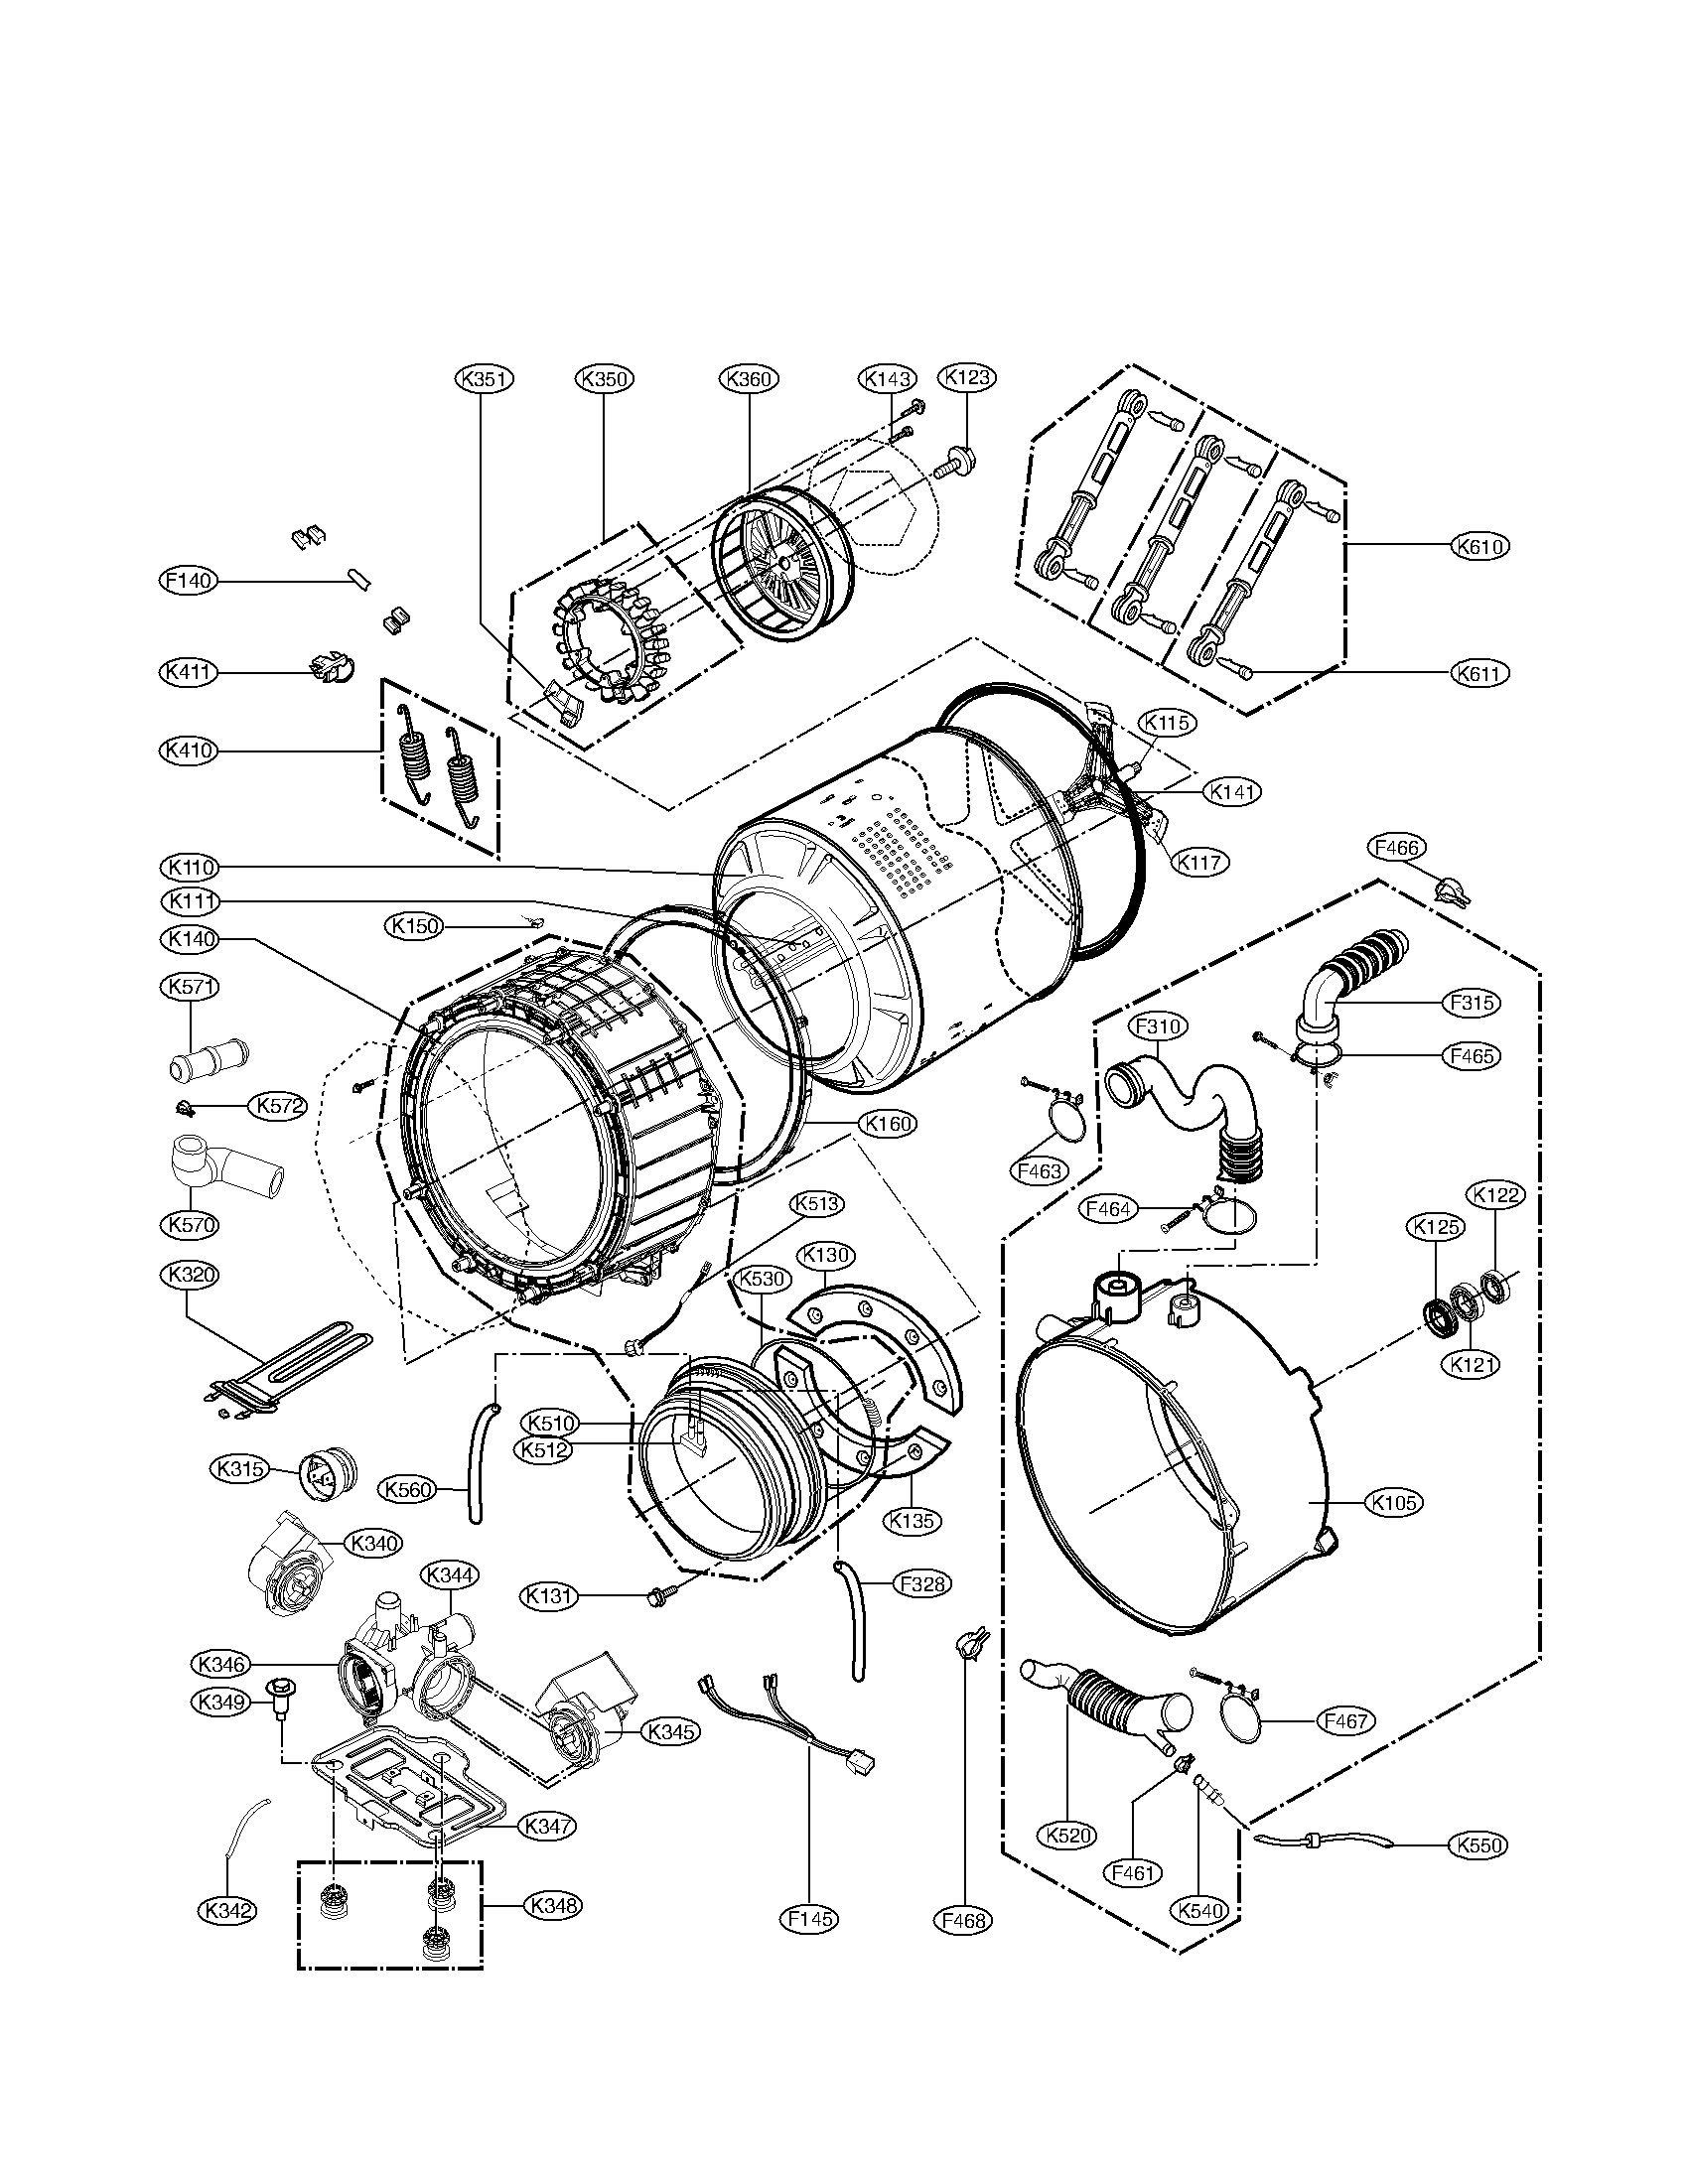 23 hp kawasaki engine parts diagram drum and tub assembly parts diagram   parts list for model  drum and tub assembly parts diagram